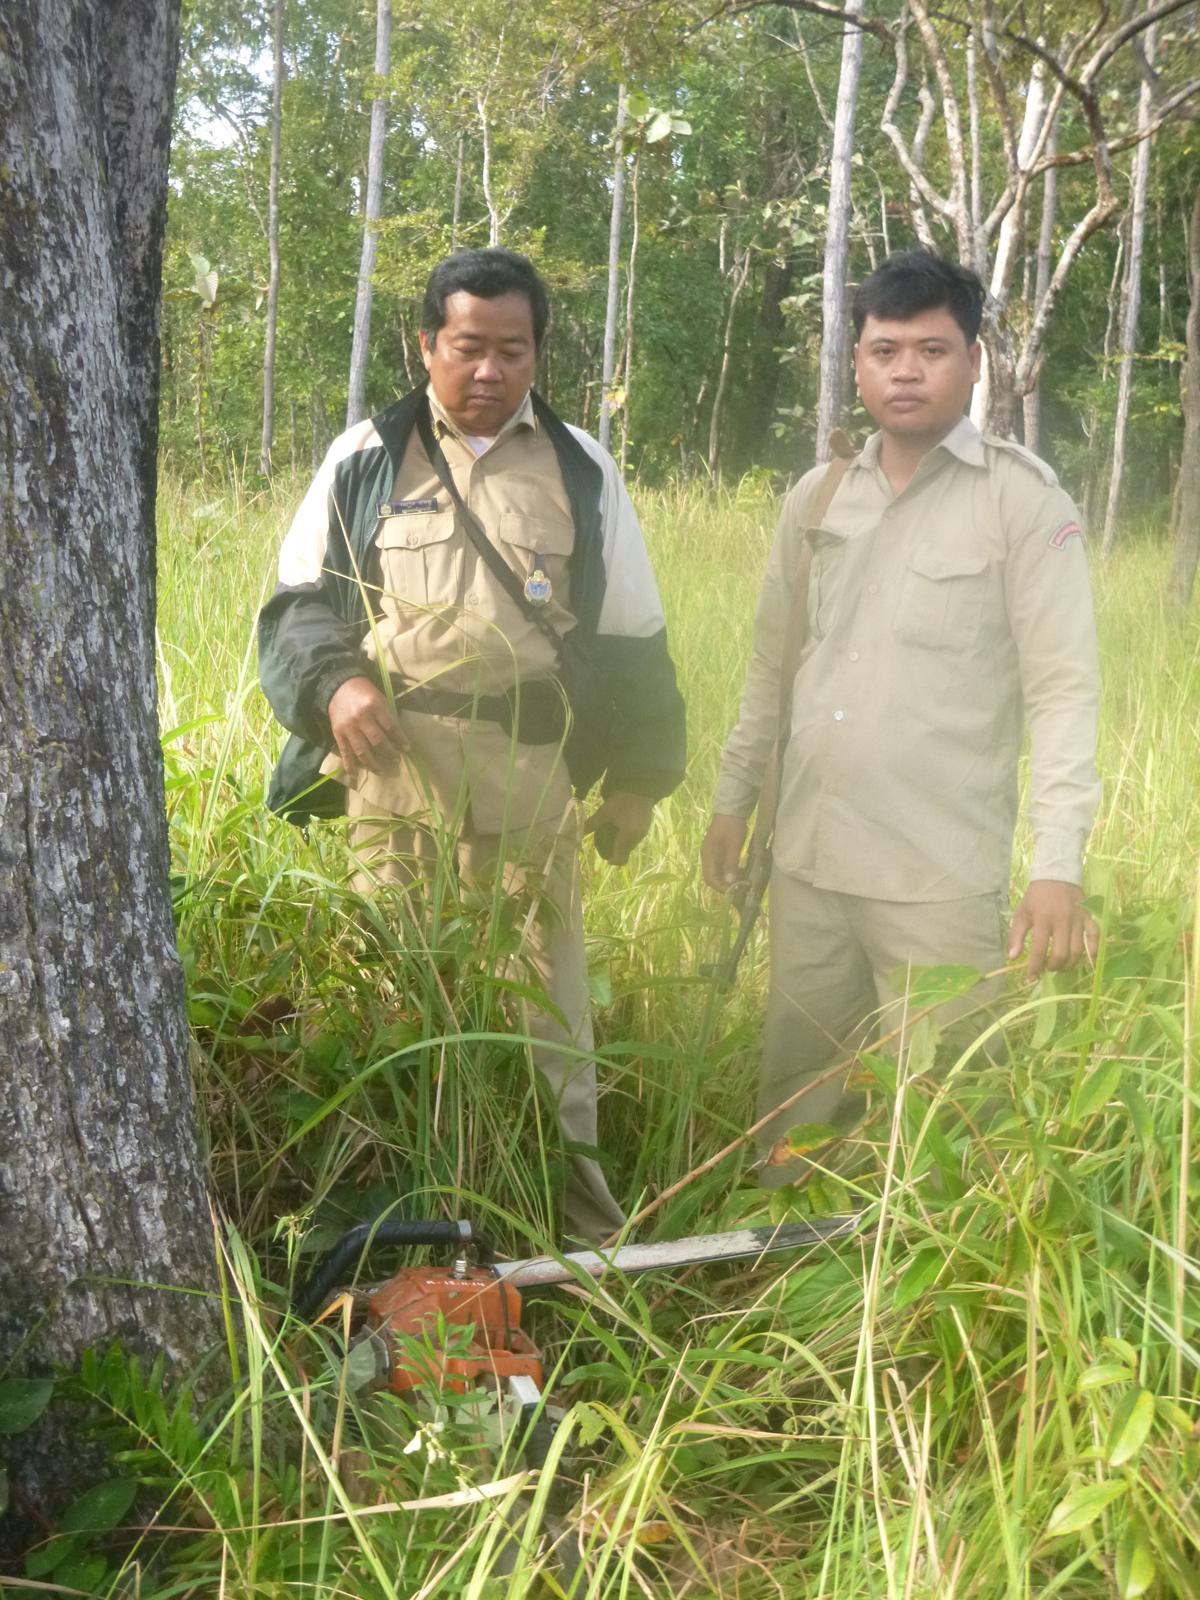 Sieng Darong FA Patrol Leader and Sab Yoh District Police patrol member